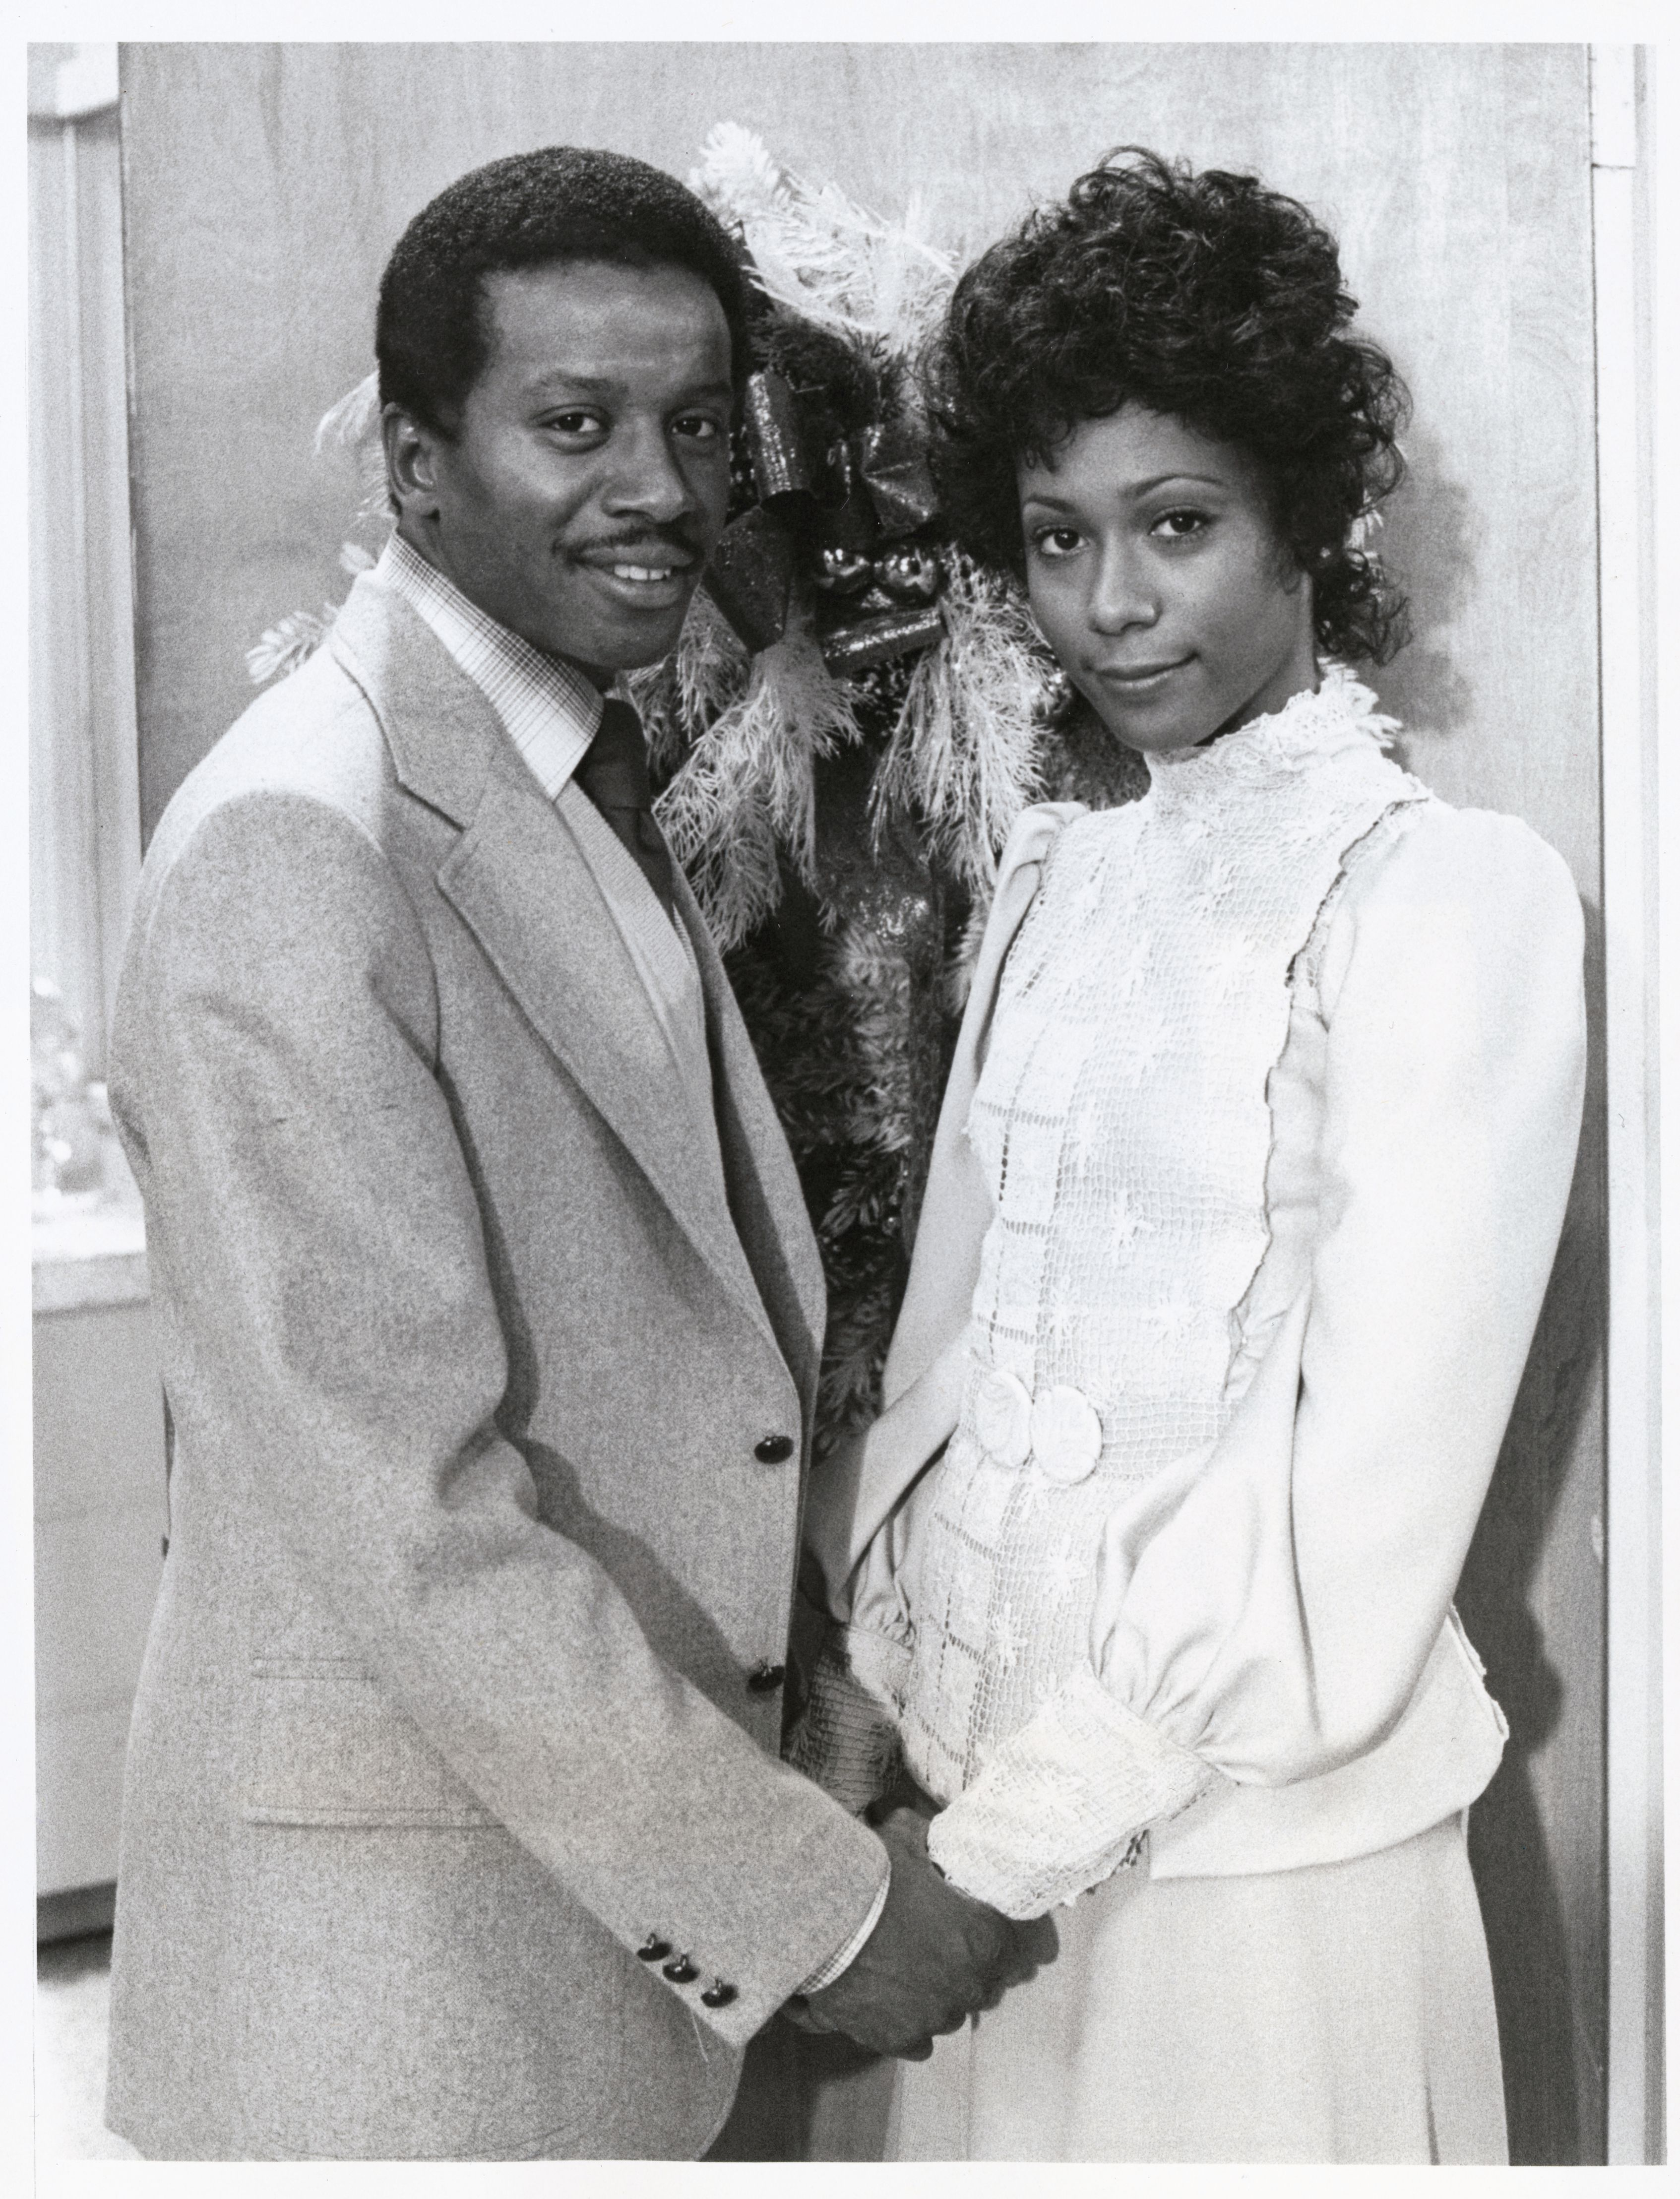 """Damon Evans, as Lionel Jefferson, and Berlinda Tolbert, playing Jenny Willis in the sitcom, """"The Jeffersons.""""